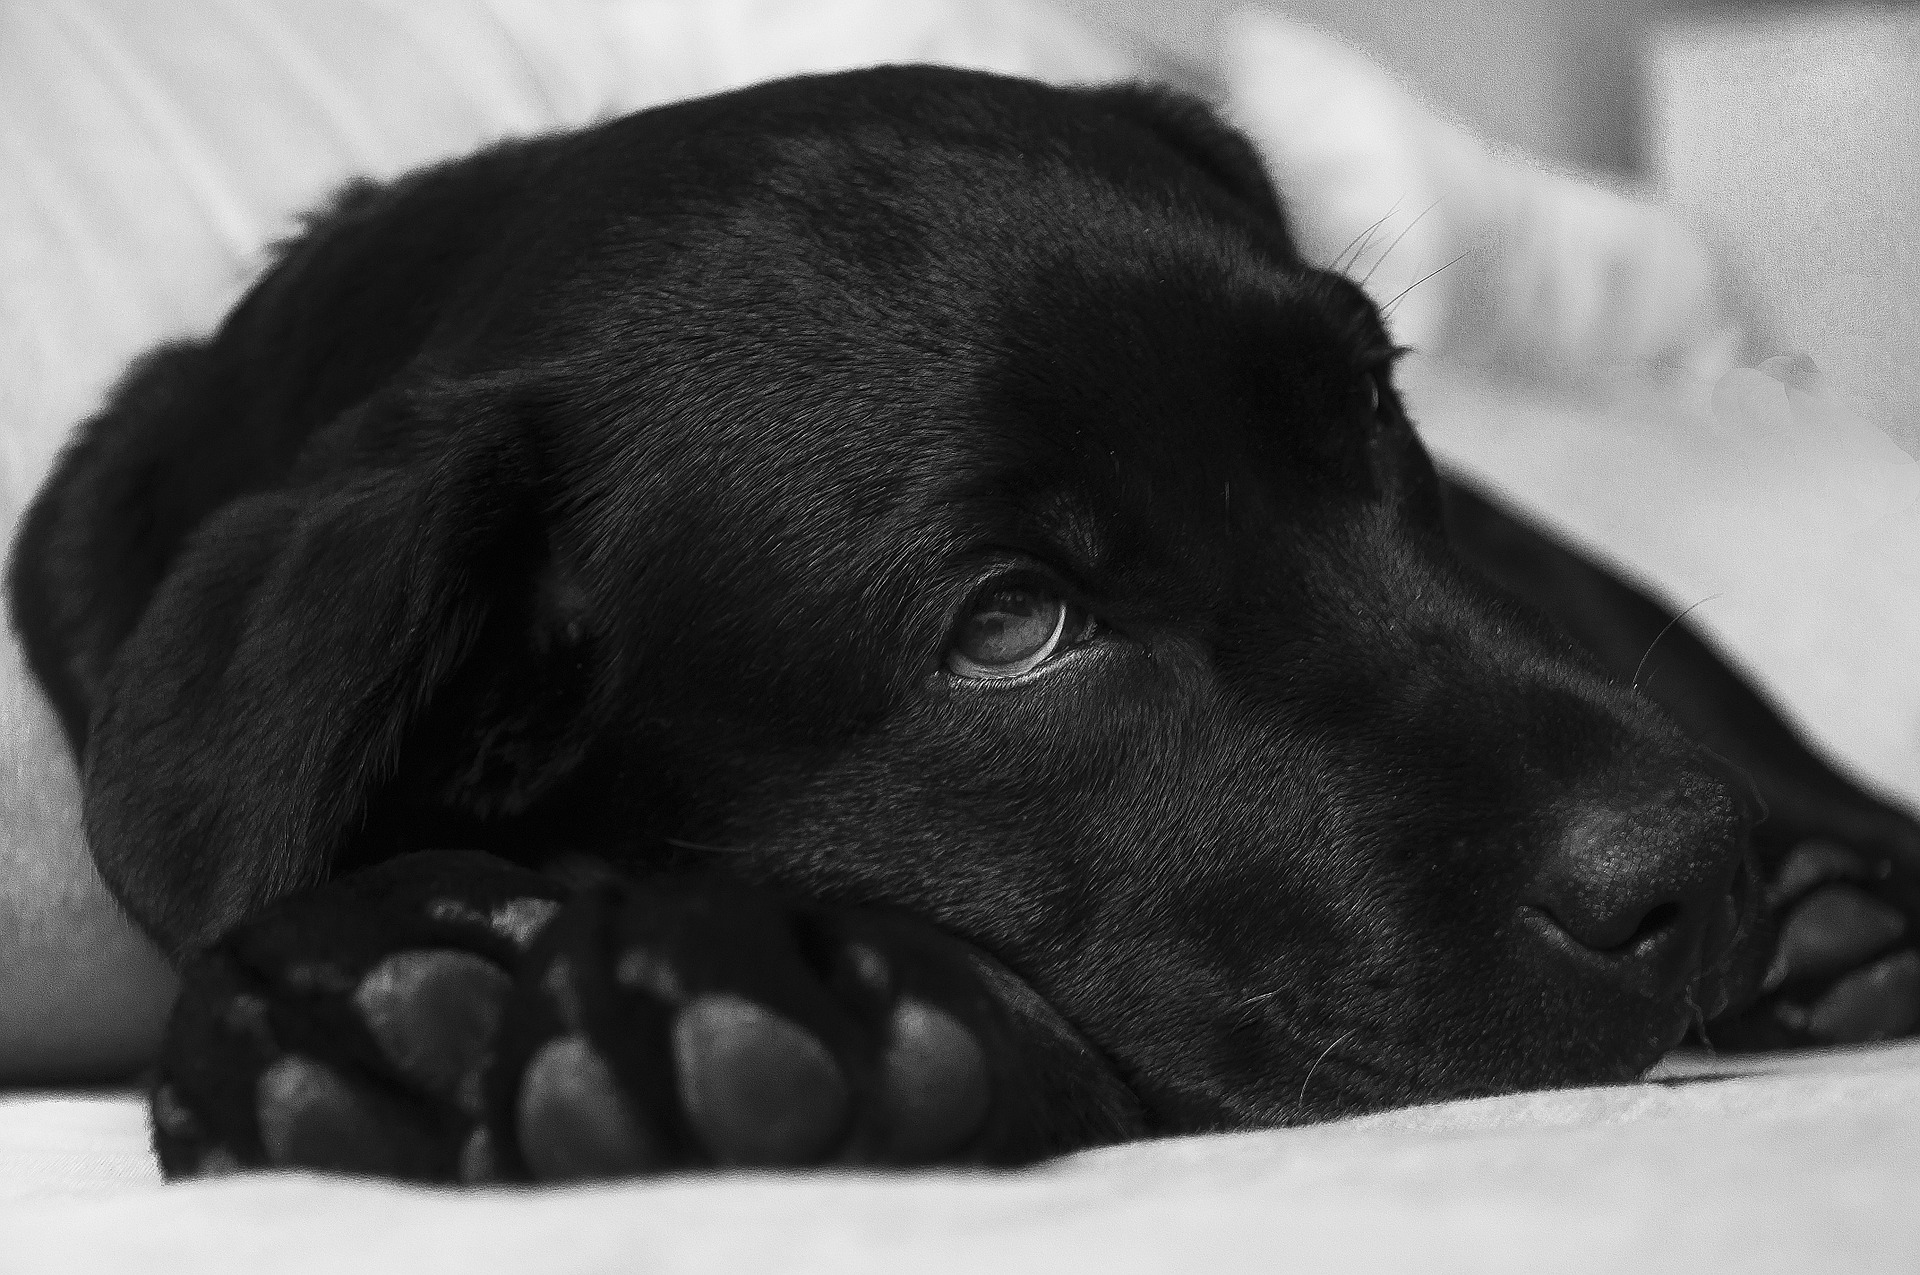 Distemper is a serious, potentially fatal, illness in dogs